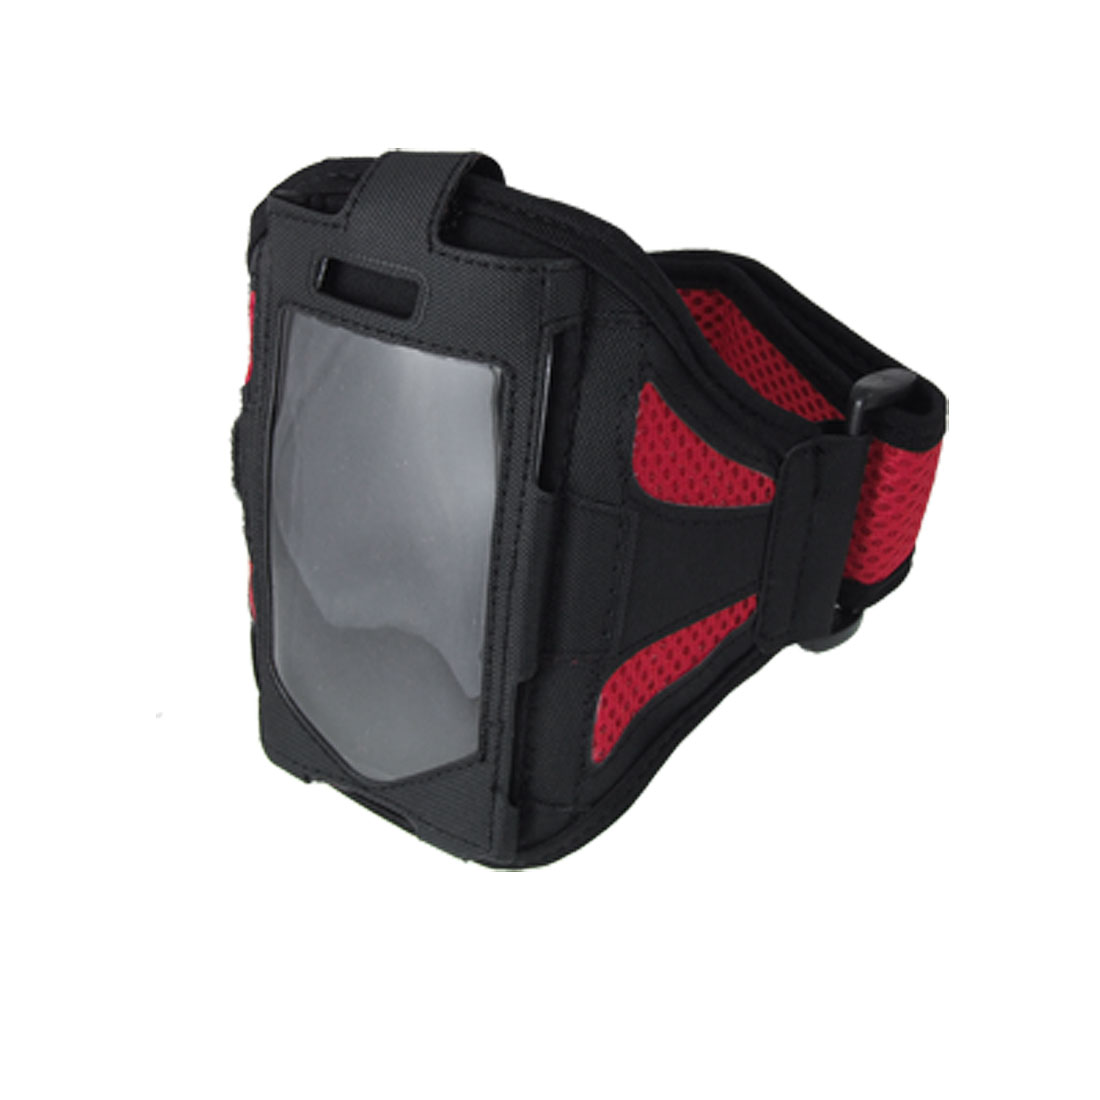 Adjustable Sports Black Red Mesh Holder Armband for Cell Phone